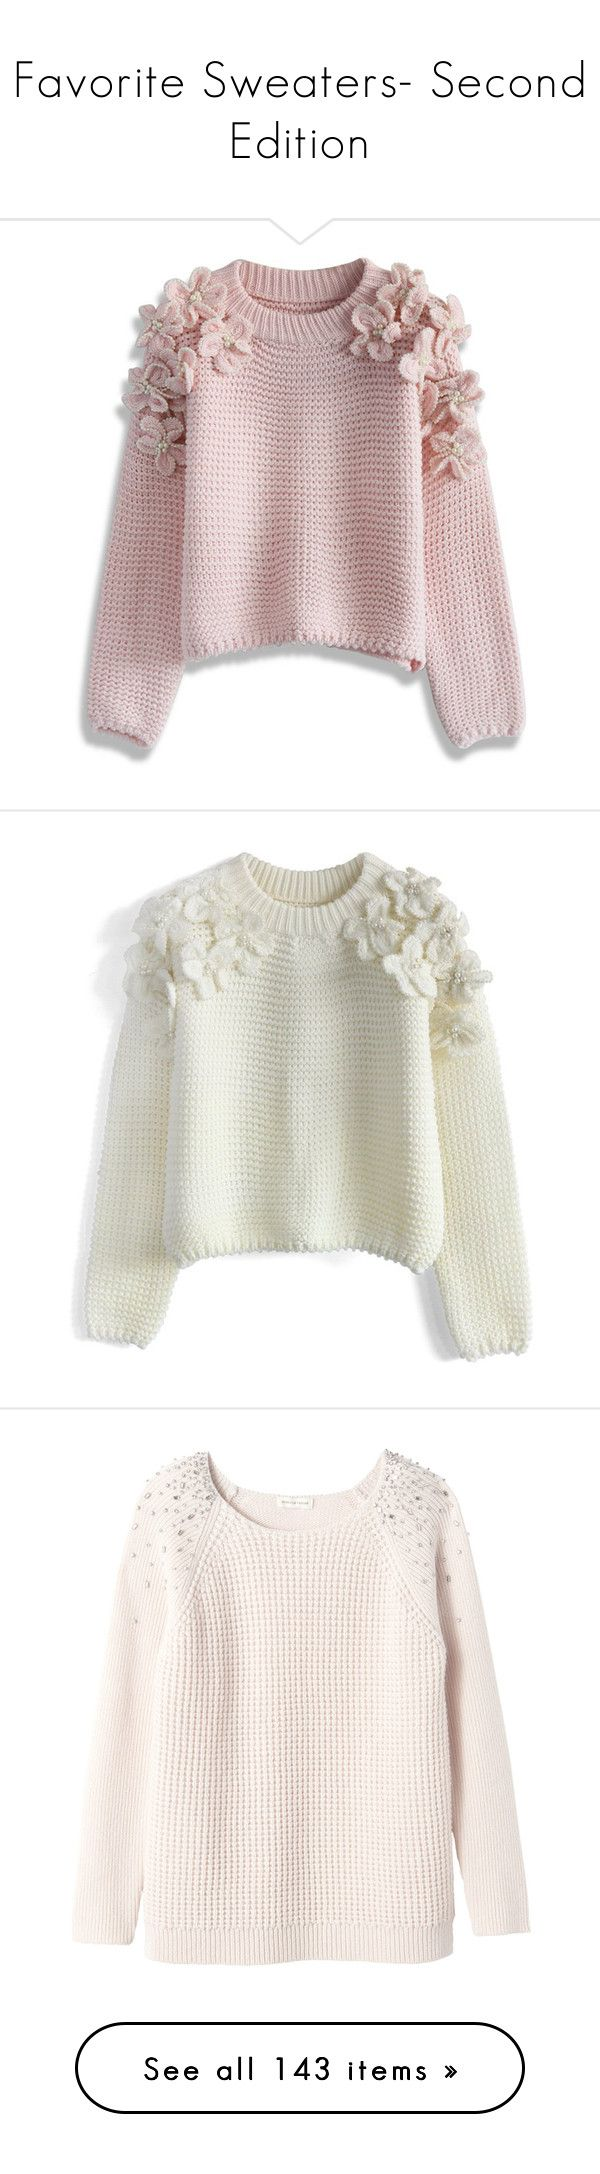 """Favorite Sweaters- Second Edition"" by happilyjynxed ❤ liked on Polyvore featuring tops, sweaters, pink, pink sweater, waffle knit sweater, embellished sweater, flower sweater, pink top, jumpers and shirts"